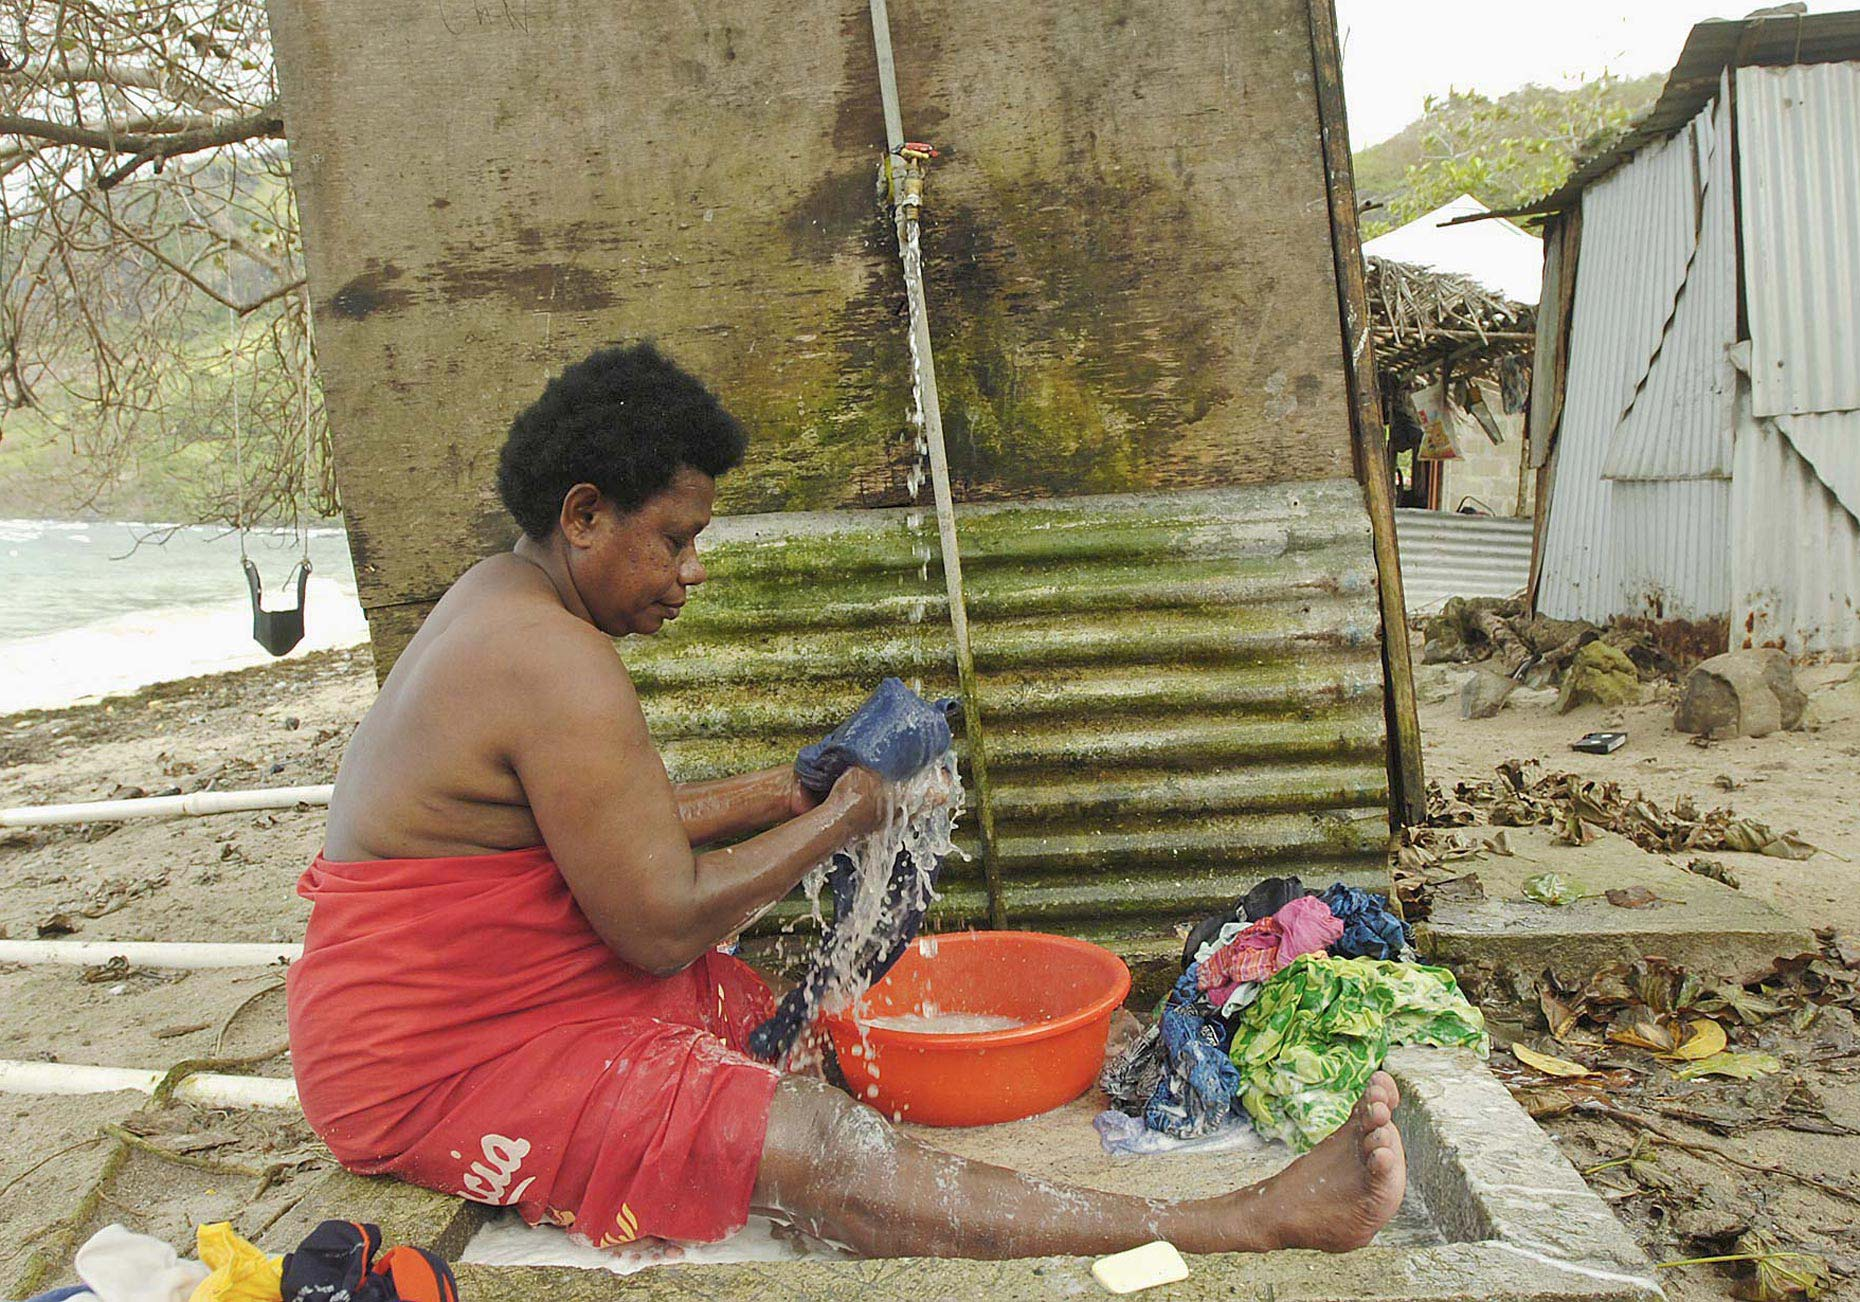 TRA_PhotoReporters_woman-washing_Waya-Island_Fiji